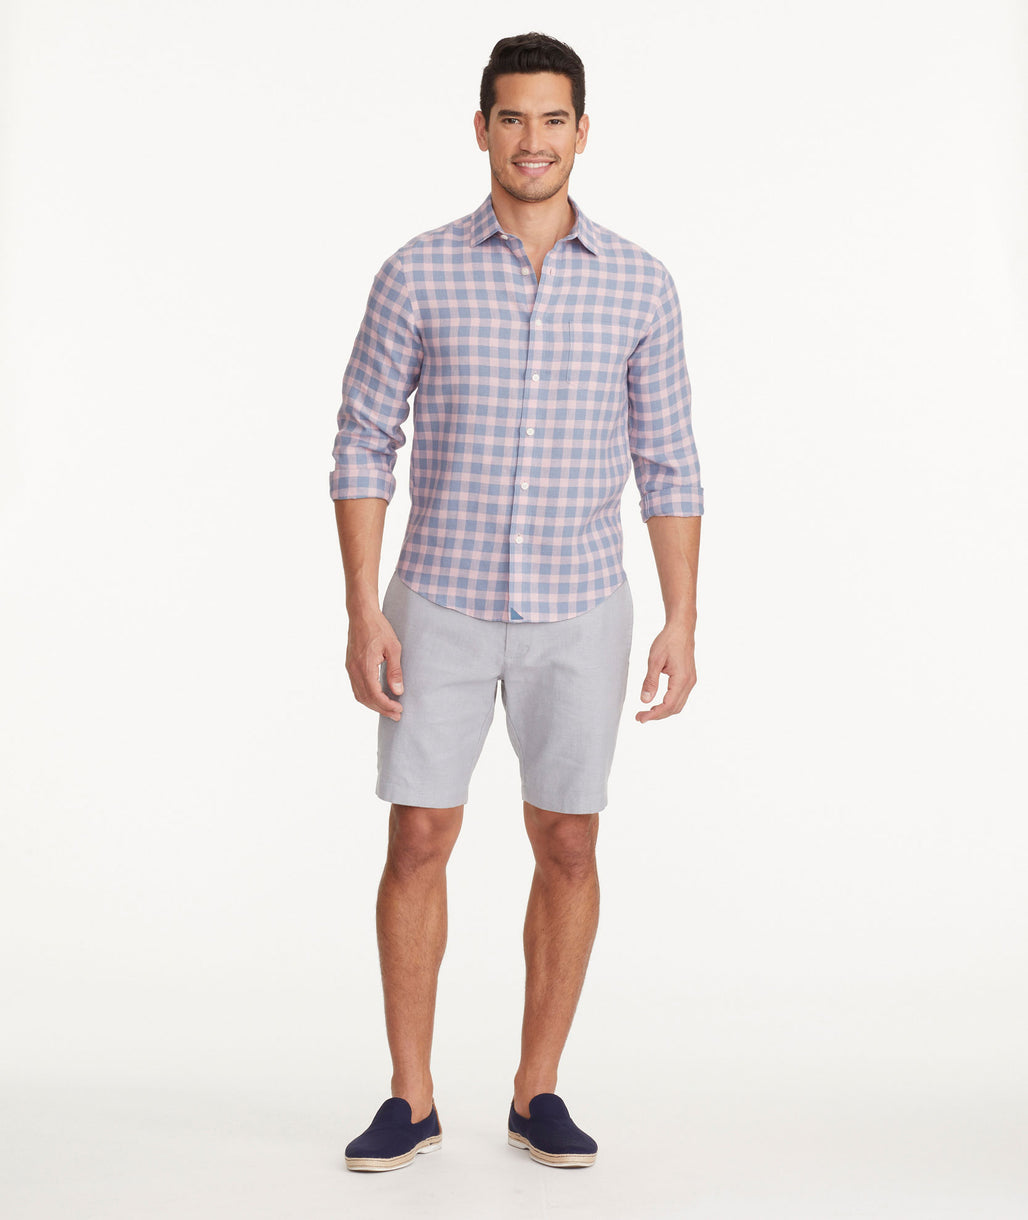 Model wearing a Grey Cotton-Linen Shorts